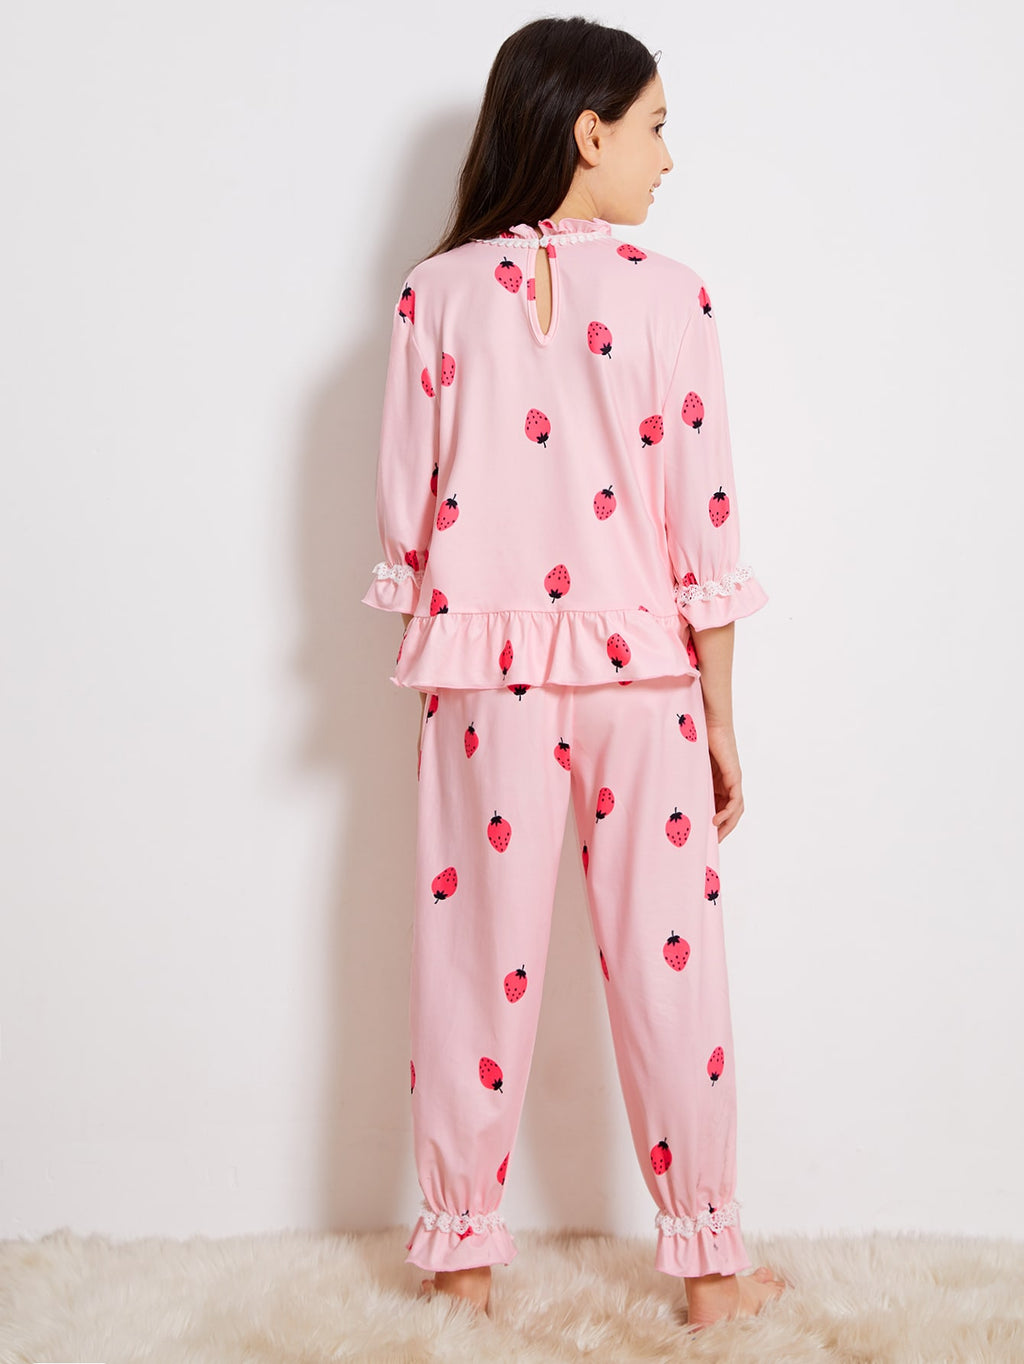 Girls Ruffle Trim Strawberry Print Top & Pants PJ Set